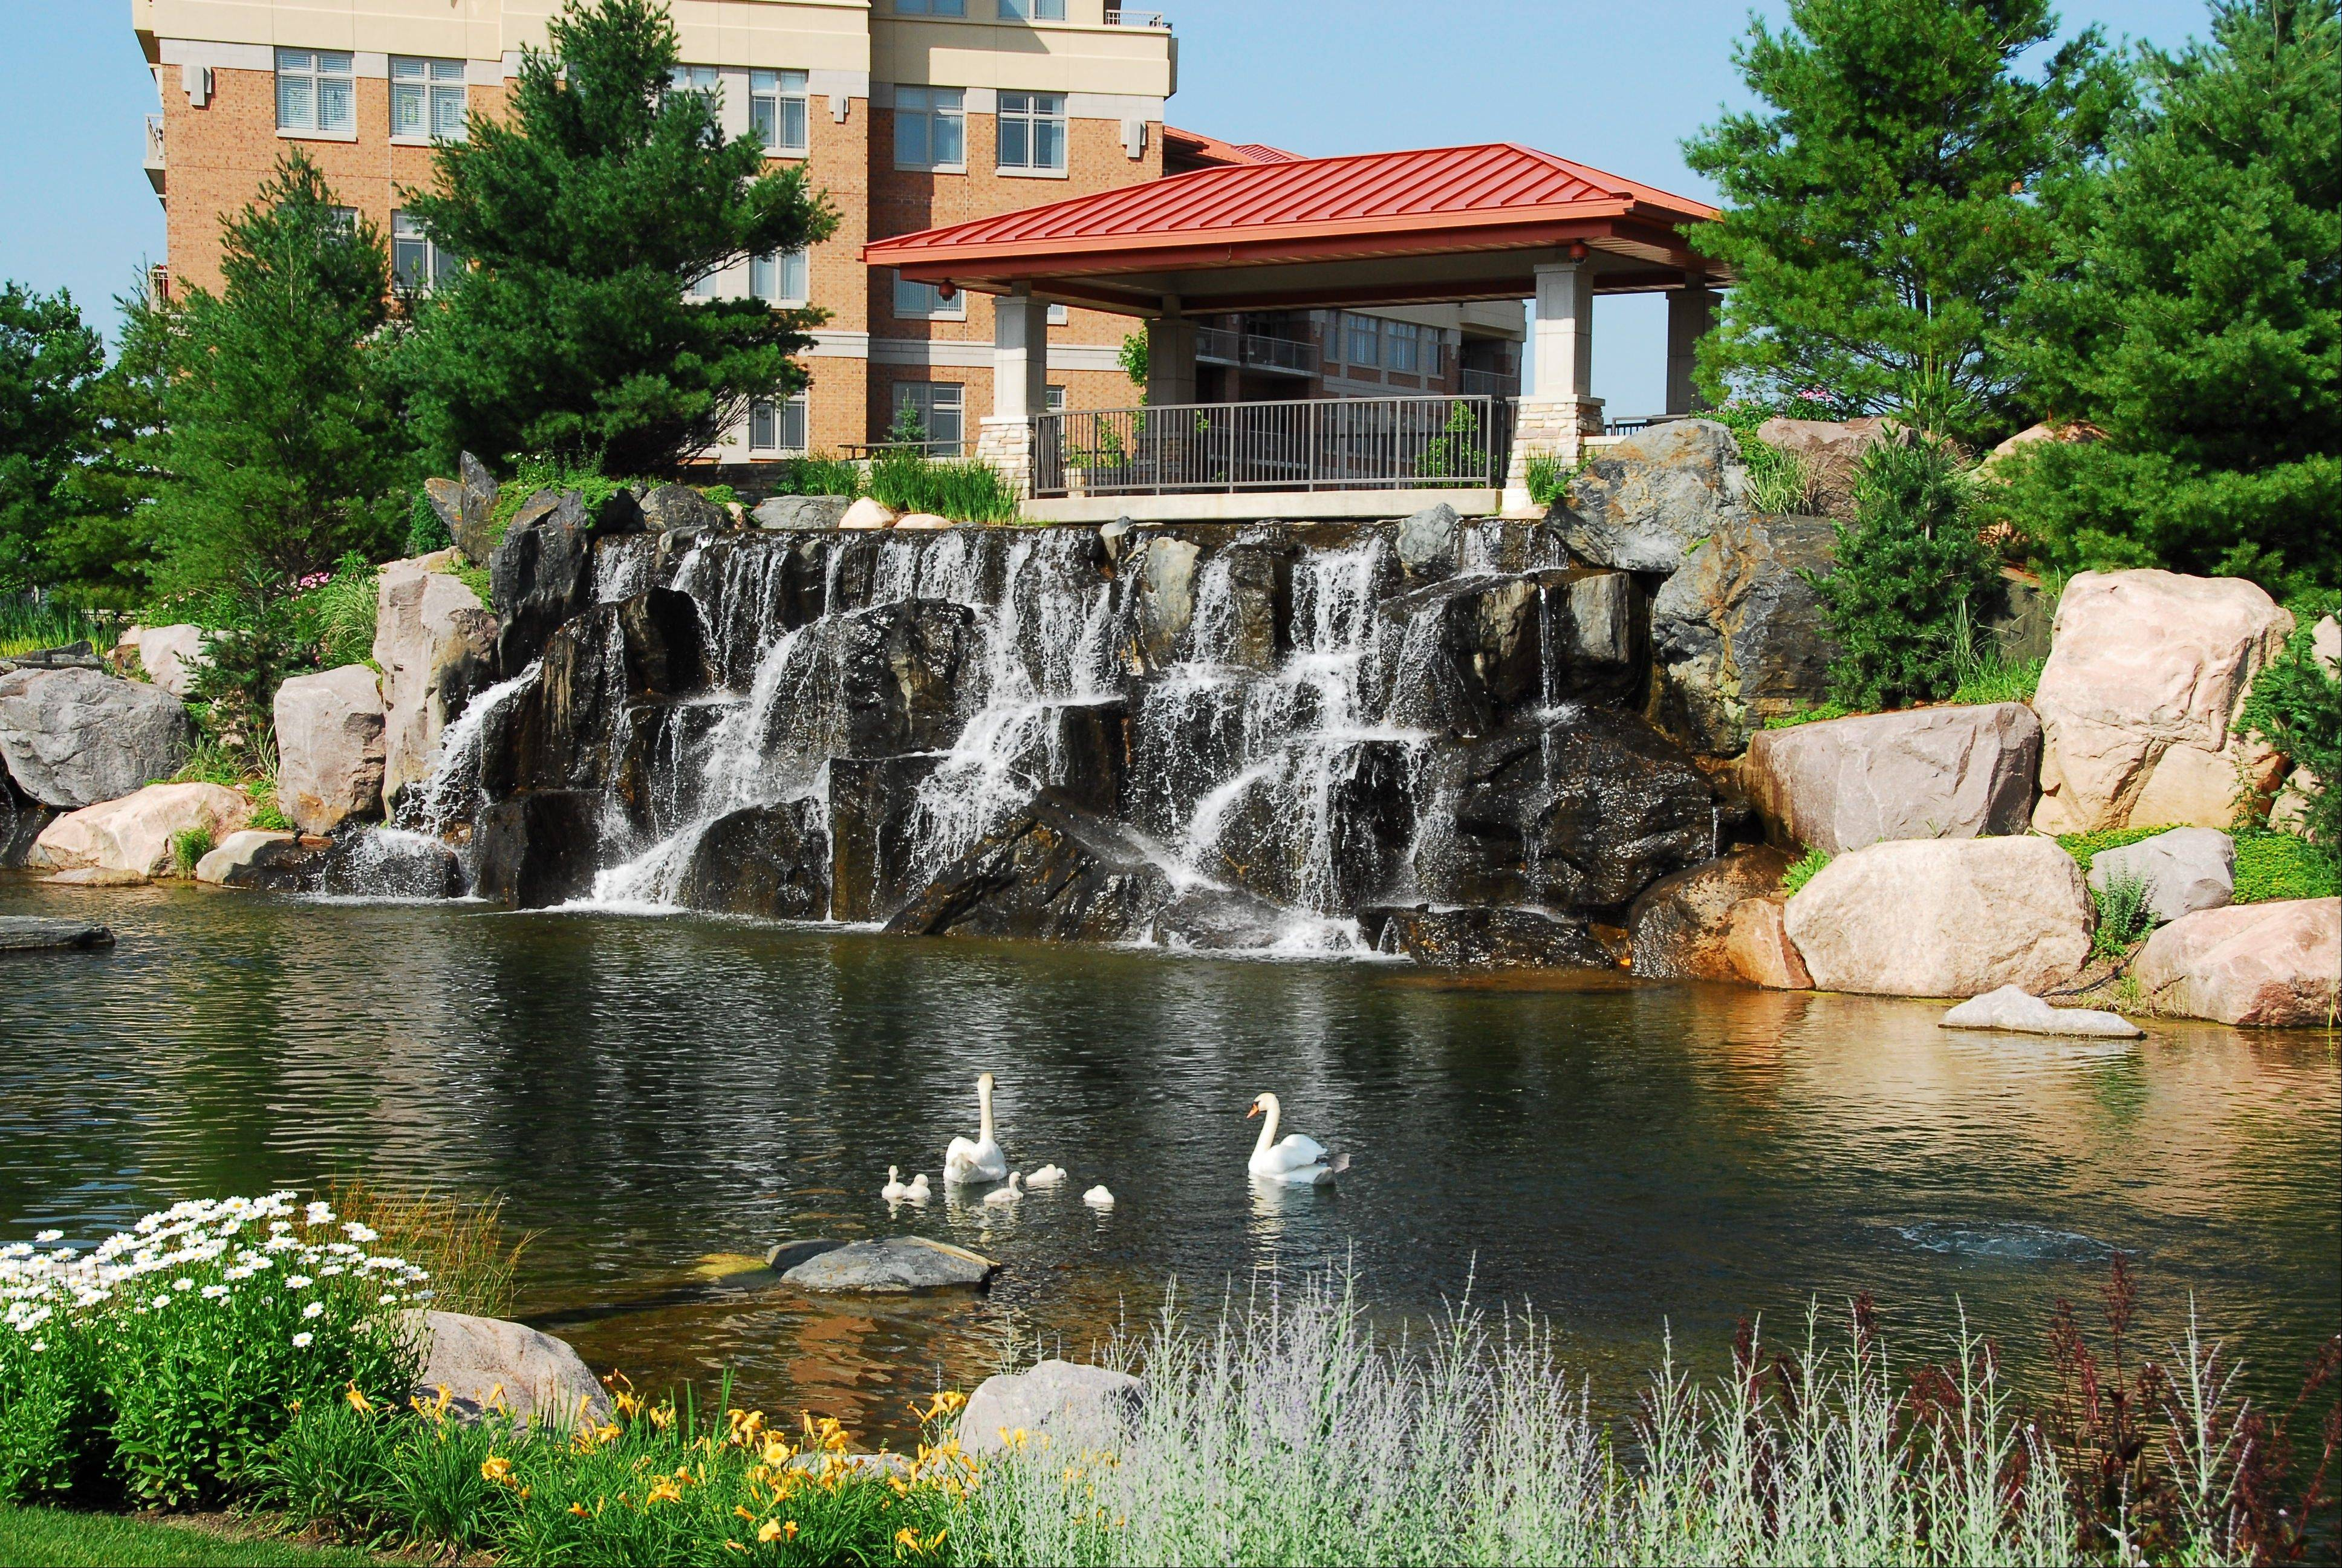 Walking paths, fountains and a waterfall are part of the landscaped grounds at Prairie Park, which features five mid-rise condominium buildings in Wheeling.